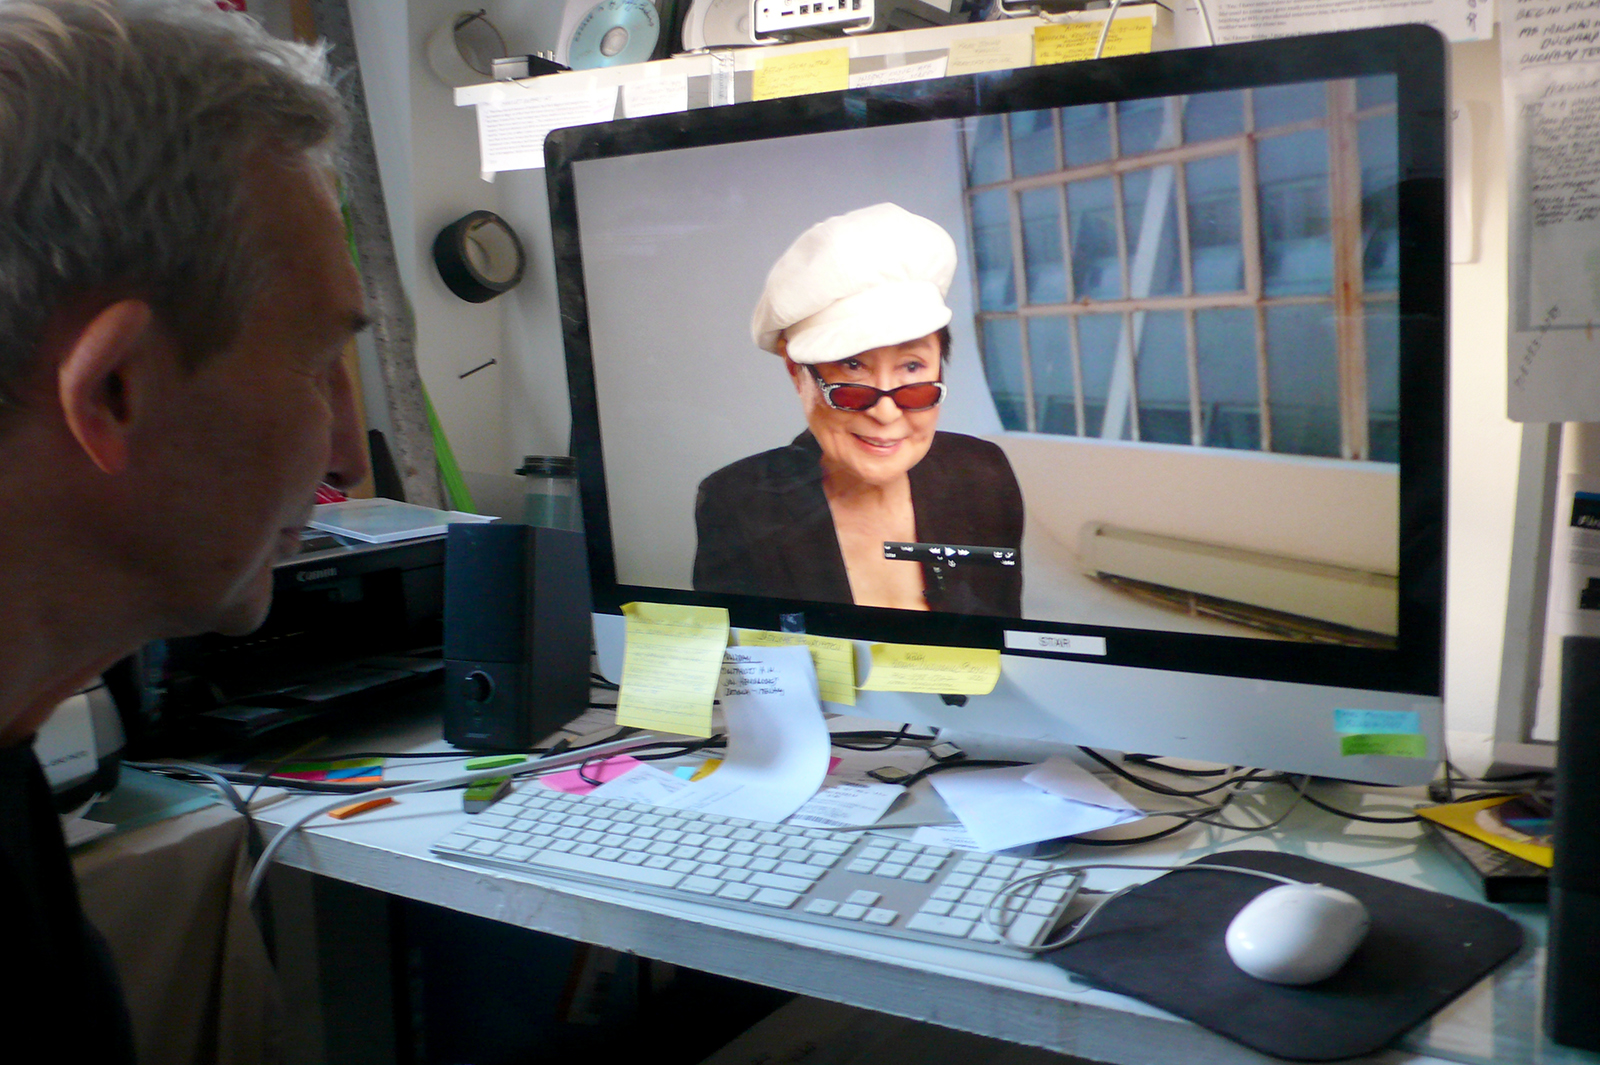 Jeffrey Perkins watches artist Yoko Ono in her interview for his film about George Maciunas (photo by Edward M. Gómez for Hyperallergic)